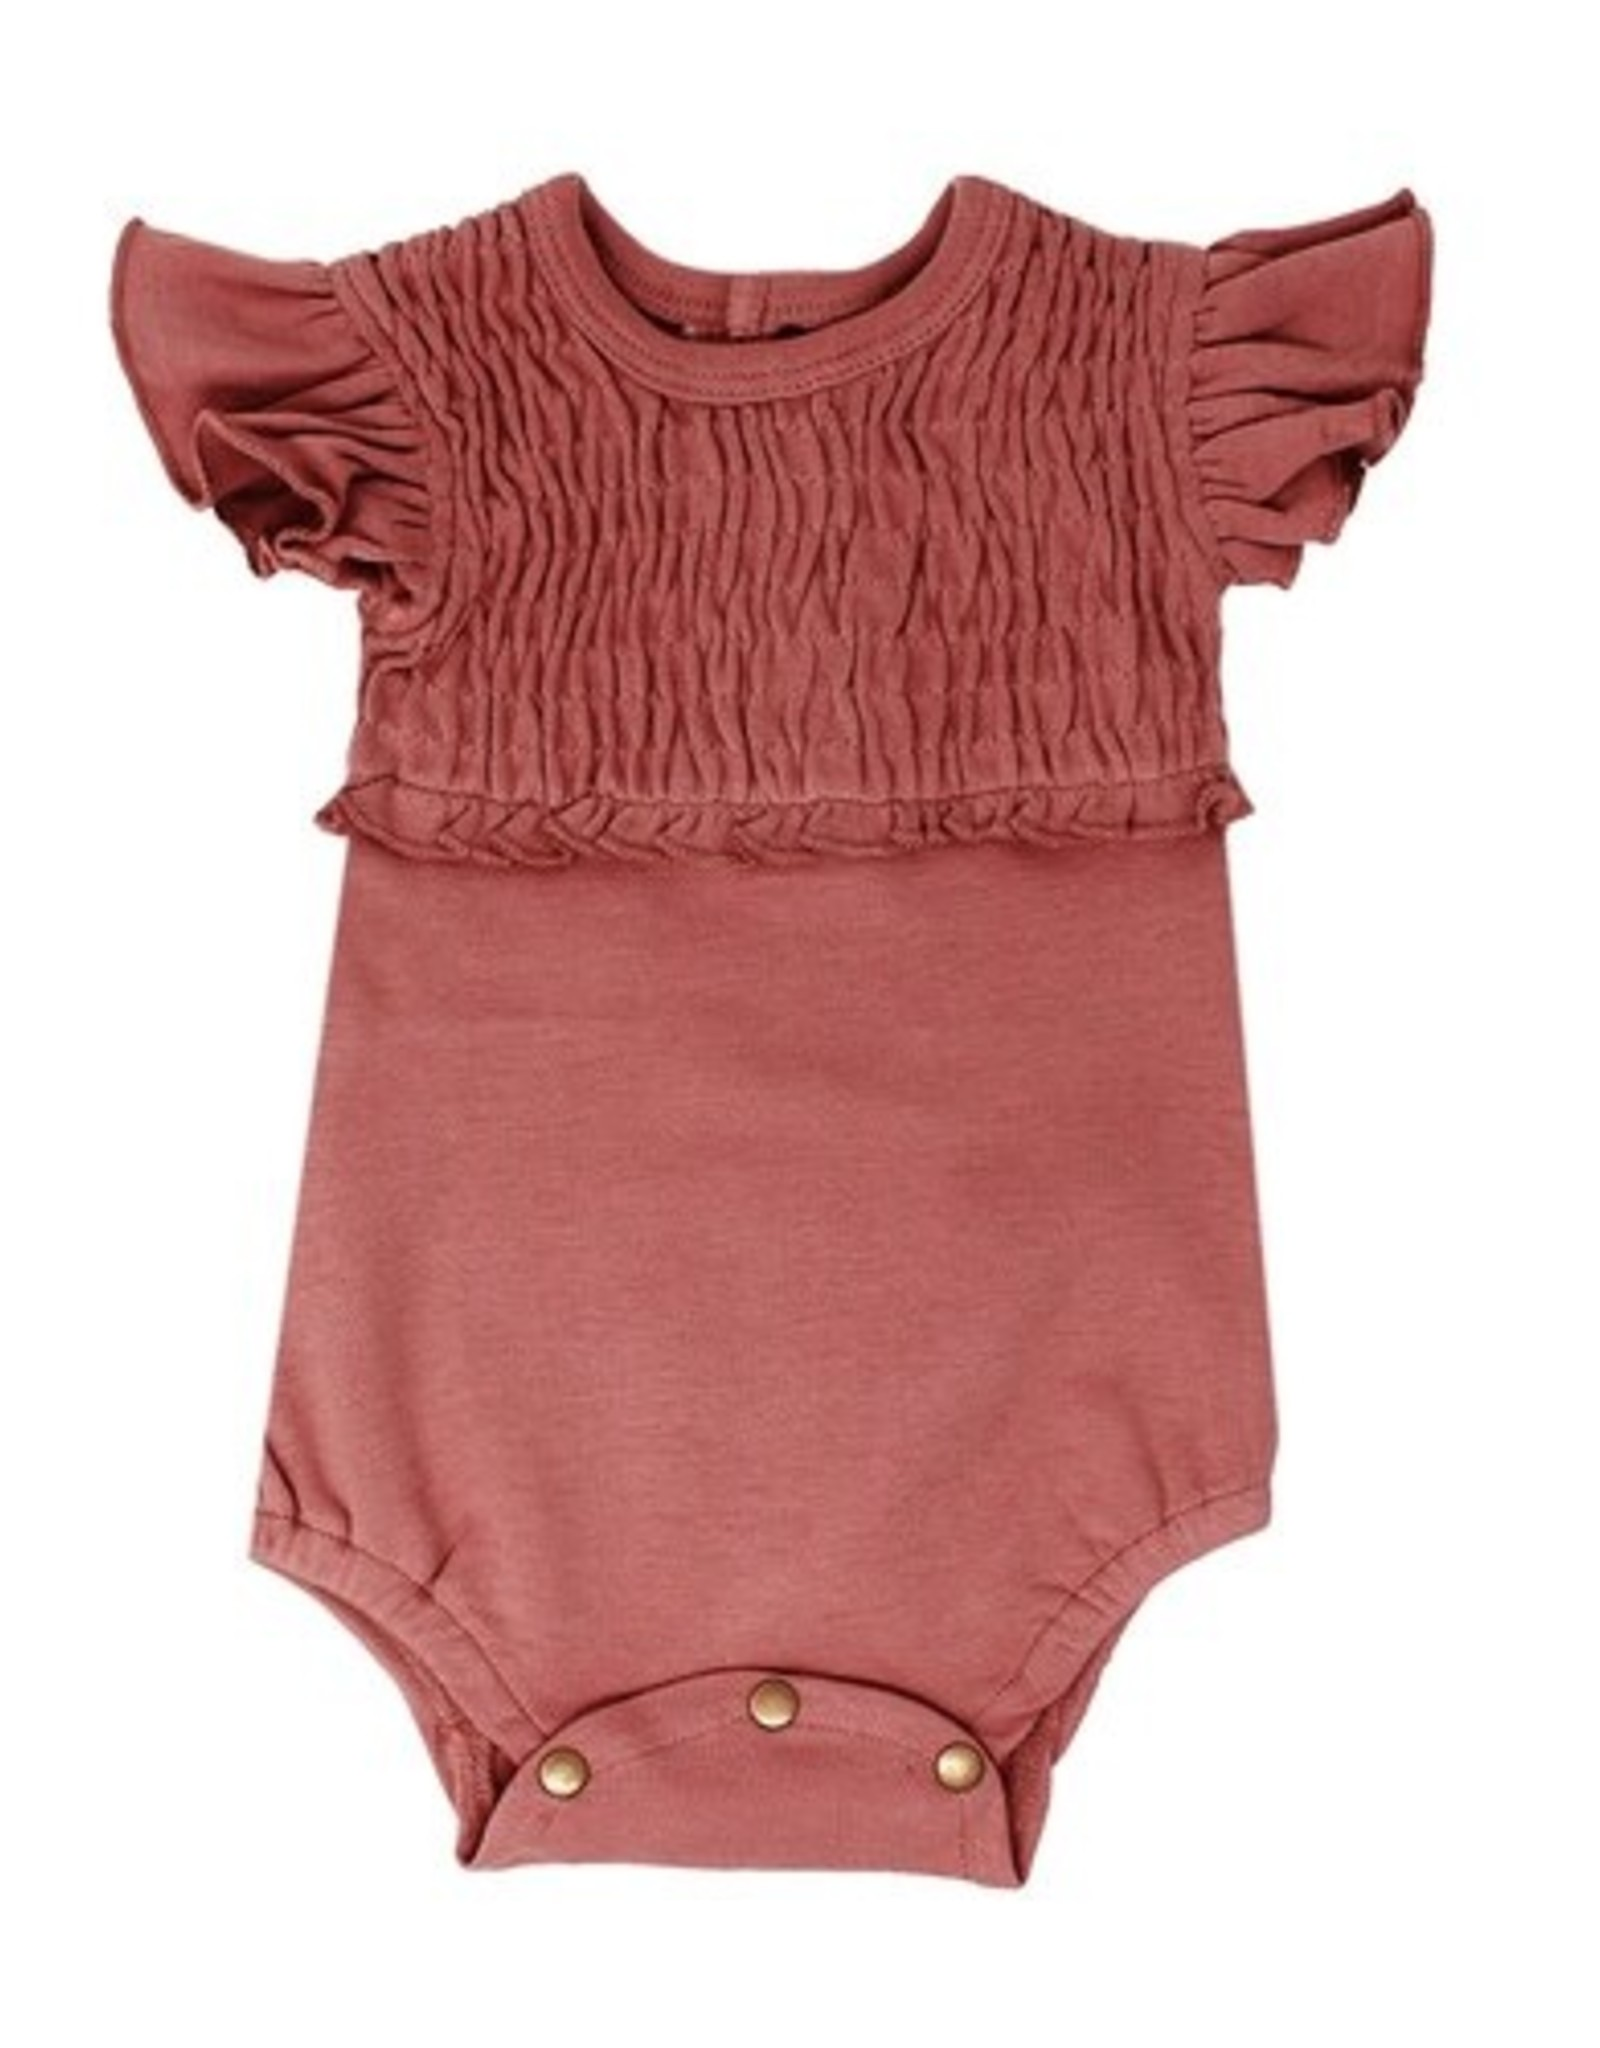 L'oved Baby Smocked Short Sleeve Body Suit Solid Sienna